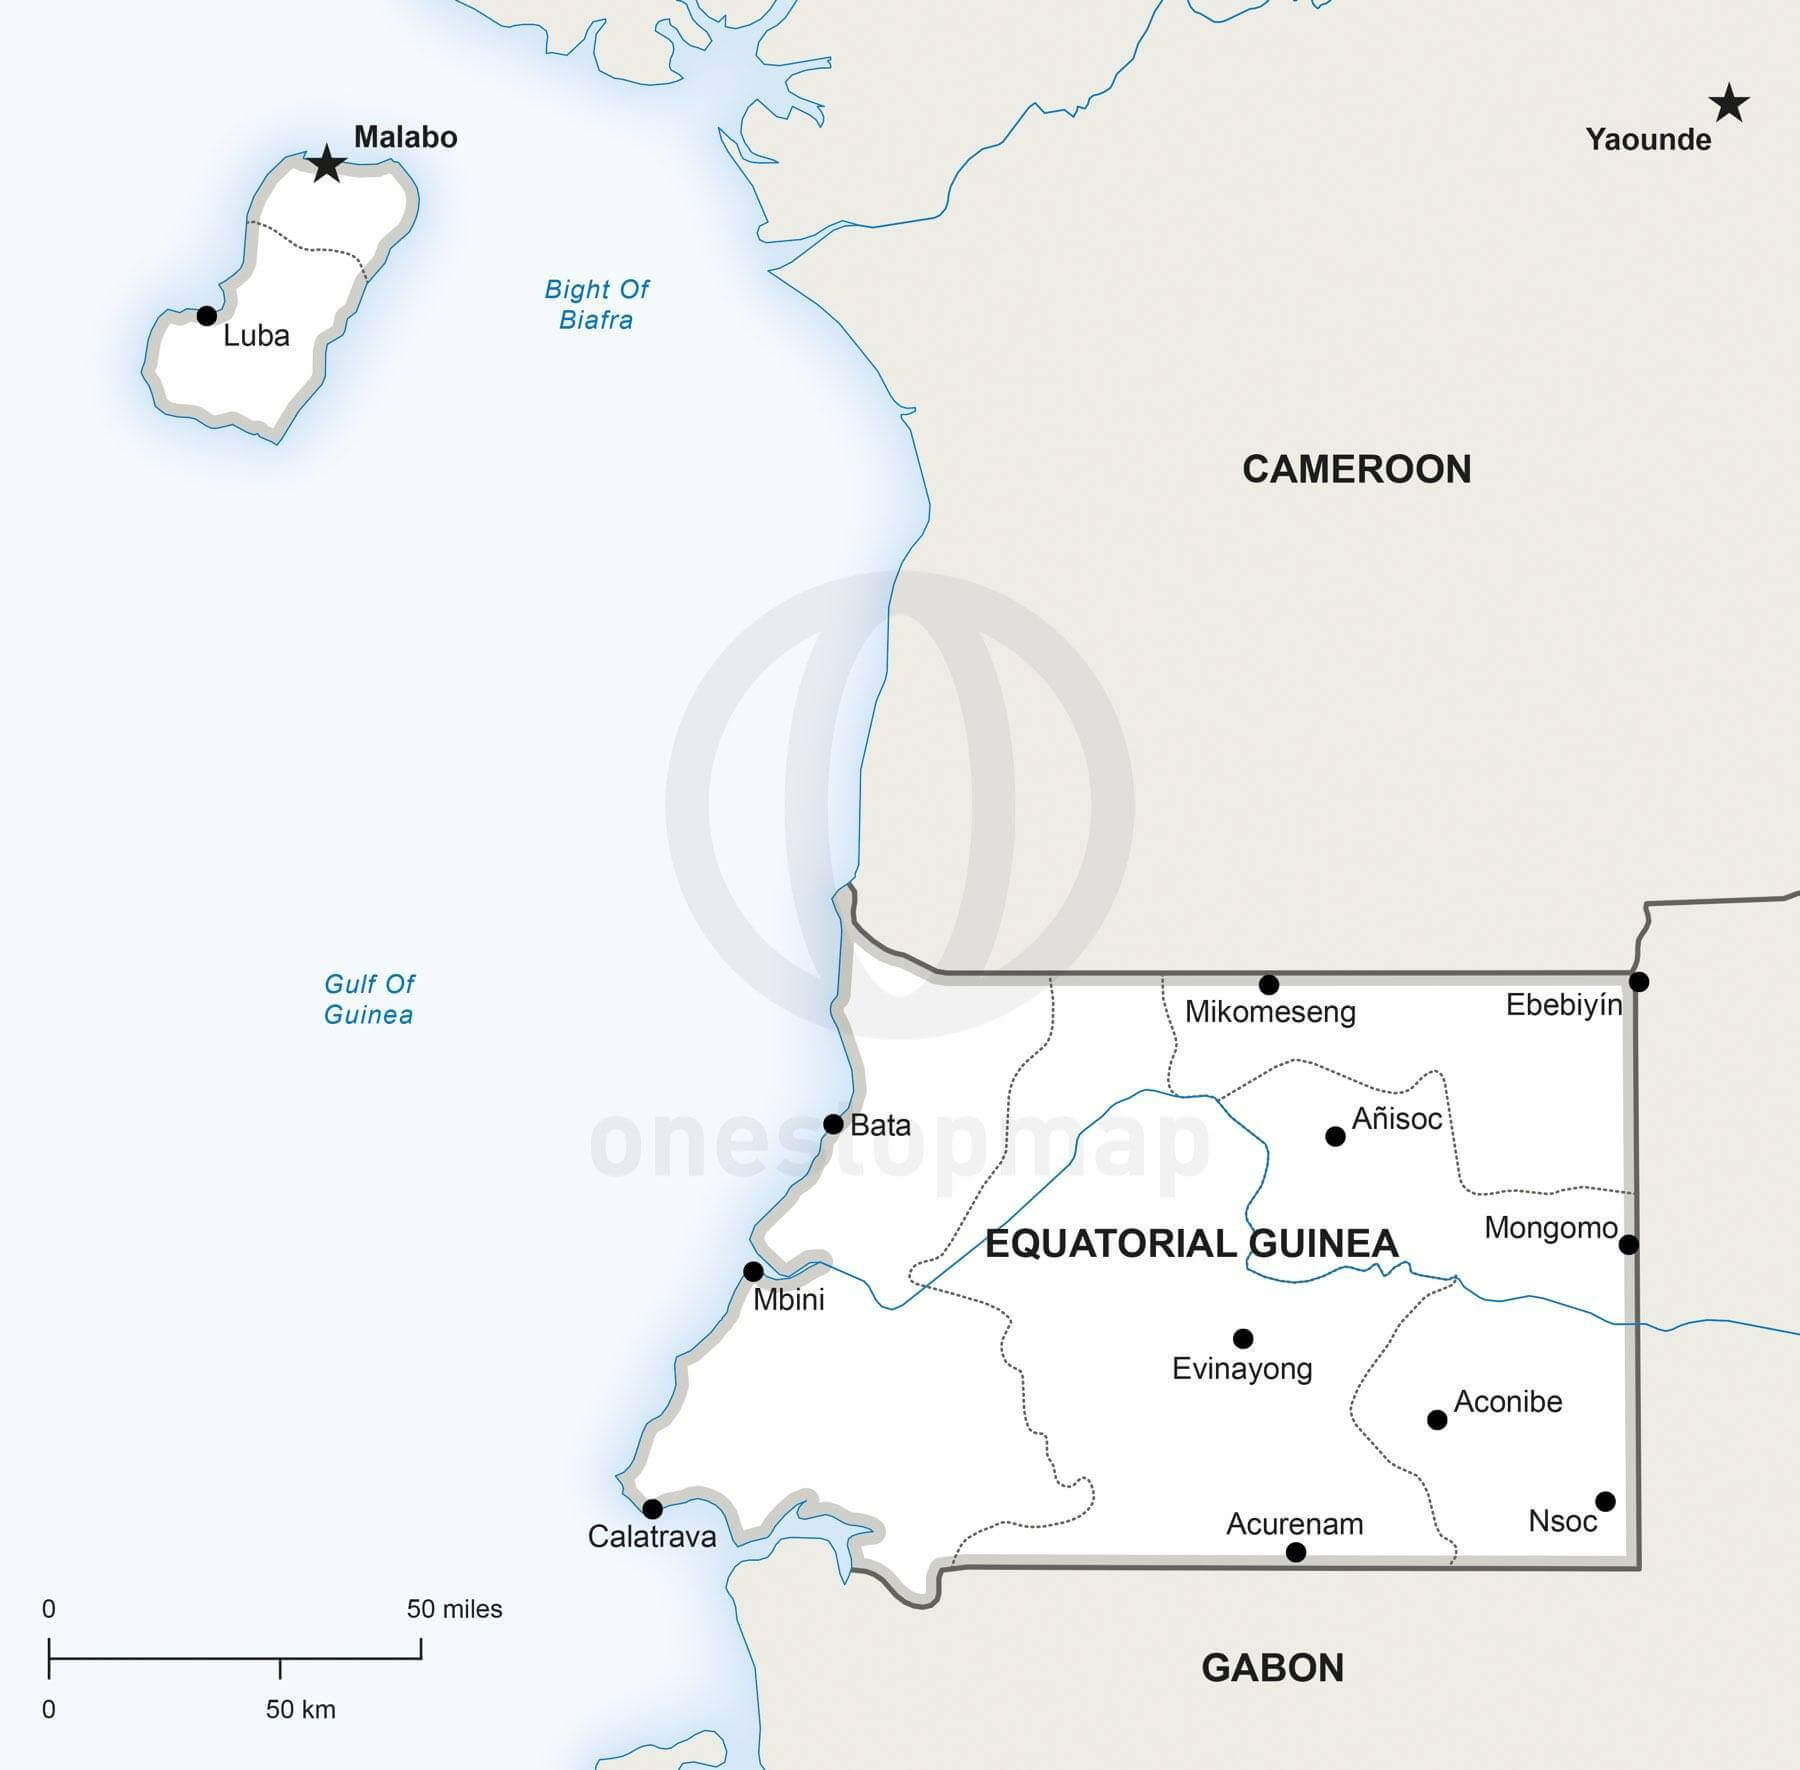 Map of Equatorial Guinea political